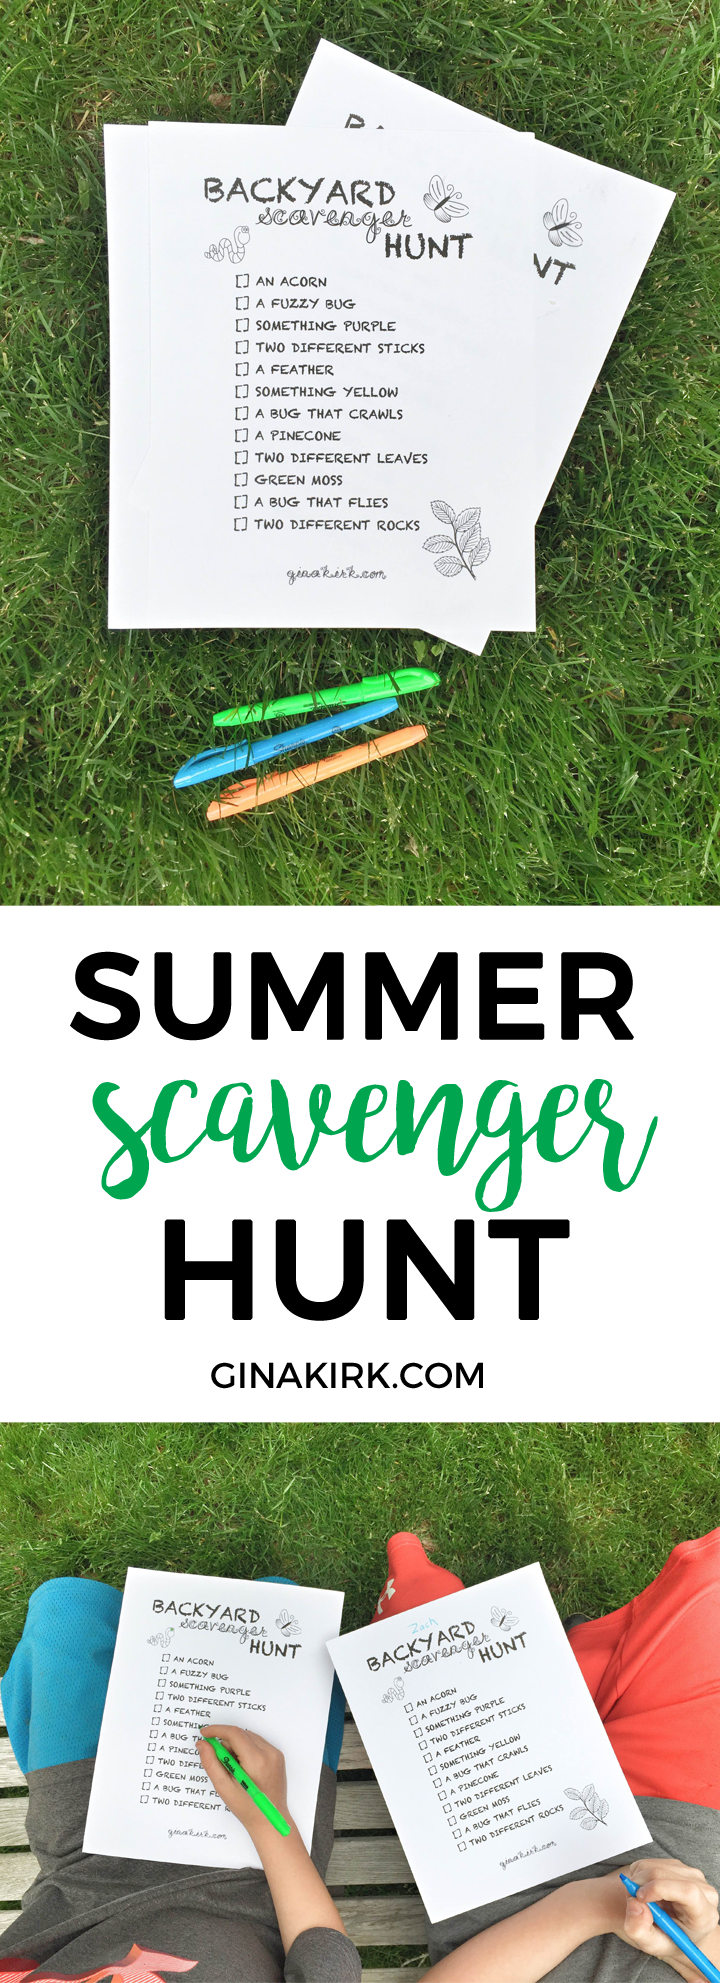 Backyard scavenger hunt | Free printable backyard nature hunt | Host a scavenger hunt ice cream party in your backyard! GinaKirk.com @ginaekirk